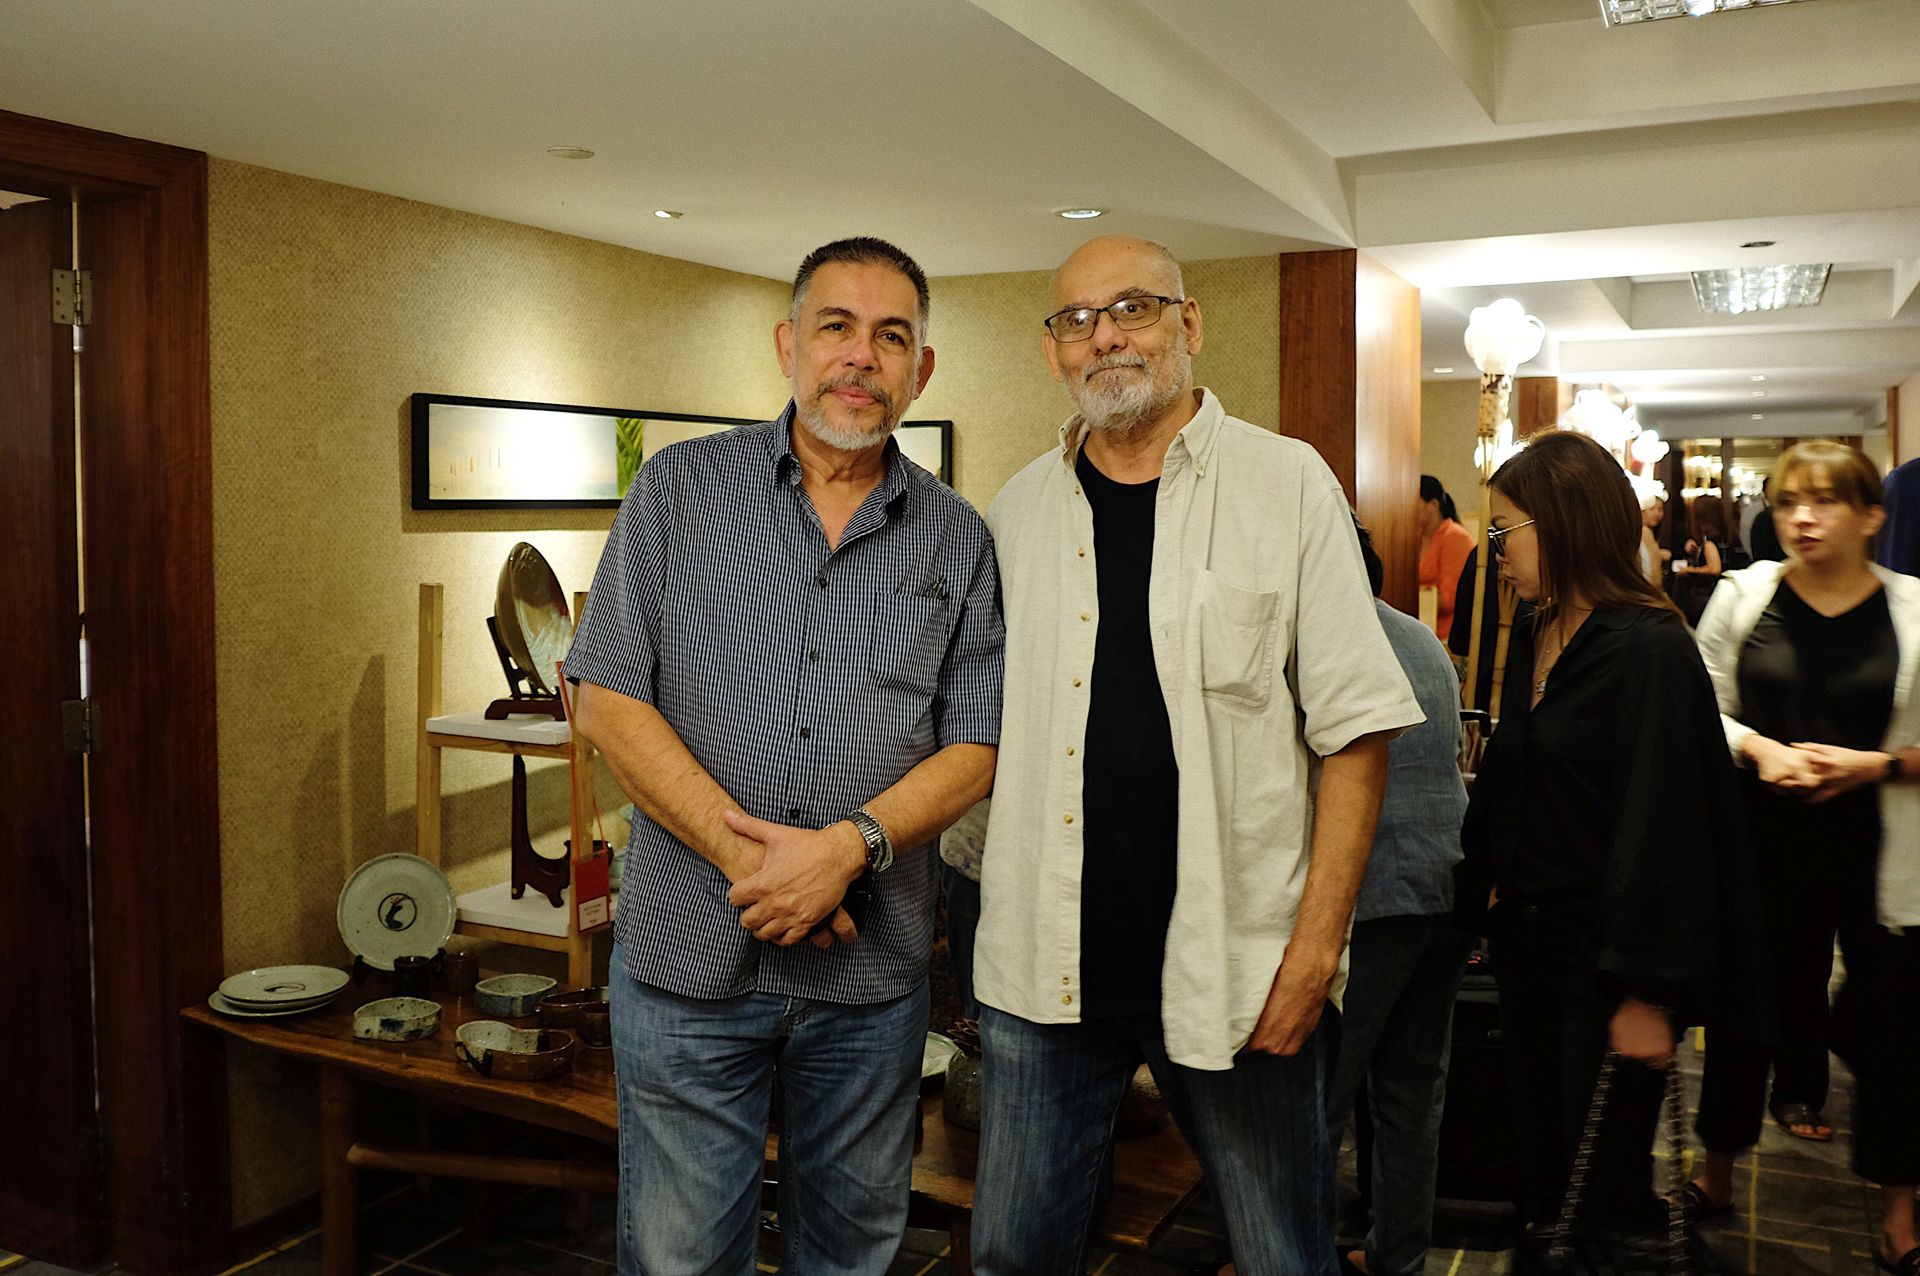 Renowned photographer Wyg Tymans with  ceramic master and exhibitor Jon Pettyjohn